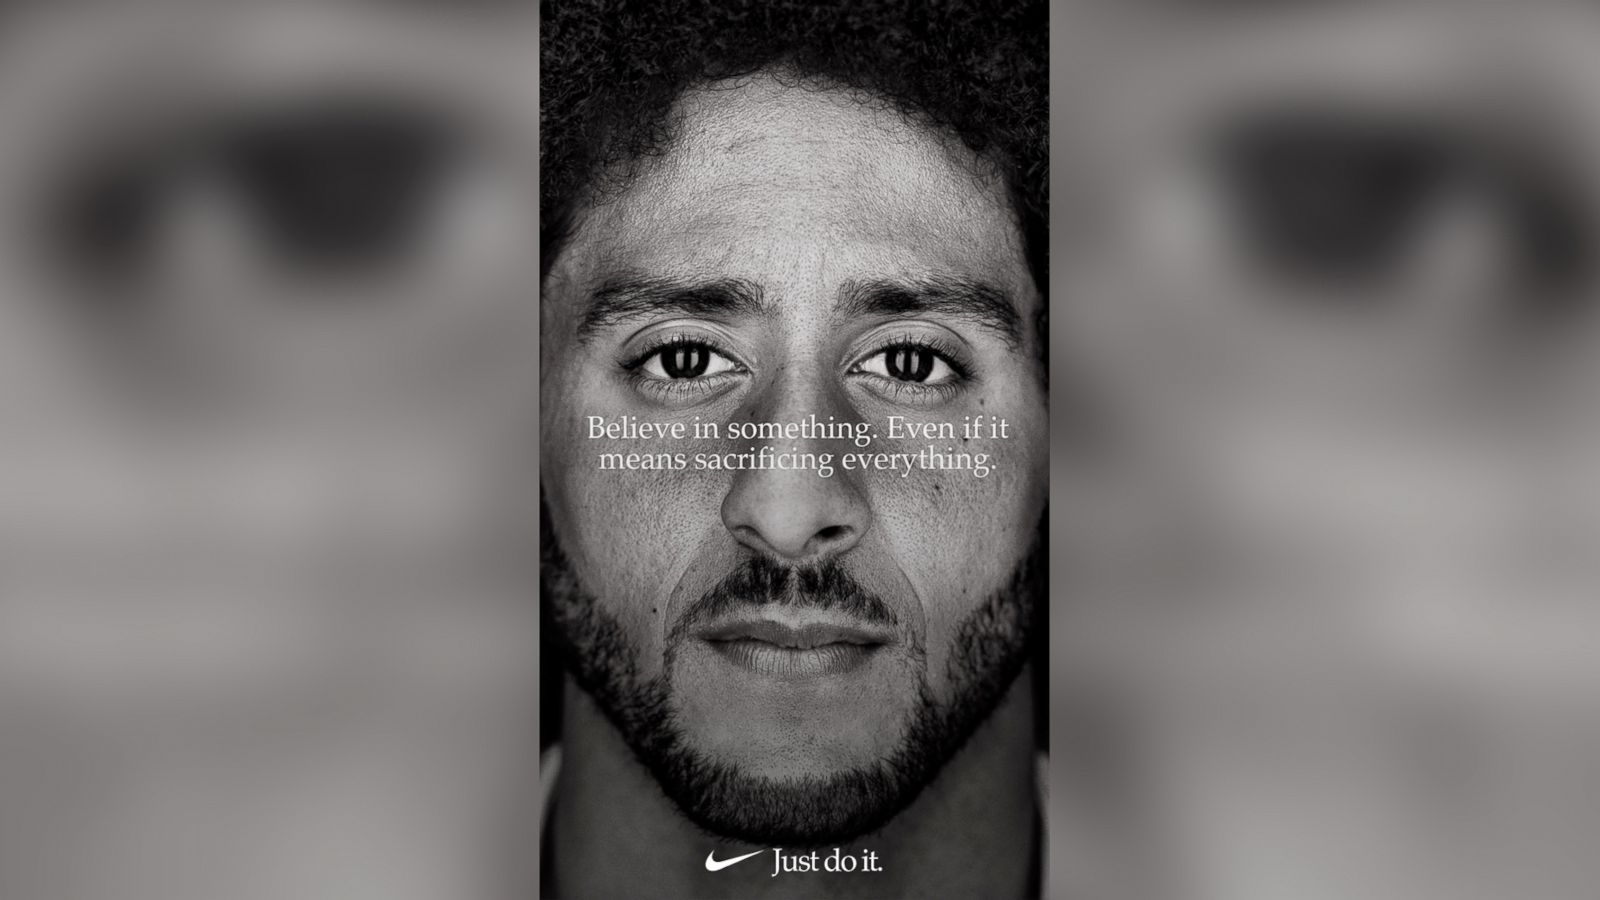 c1462184173 Colin kaepernick named face of nikes new anniversary just do it campaign  abc news jpg 1600x900